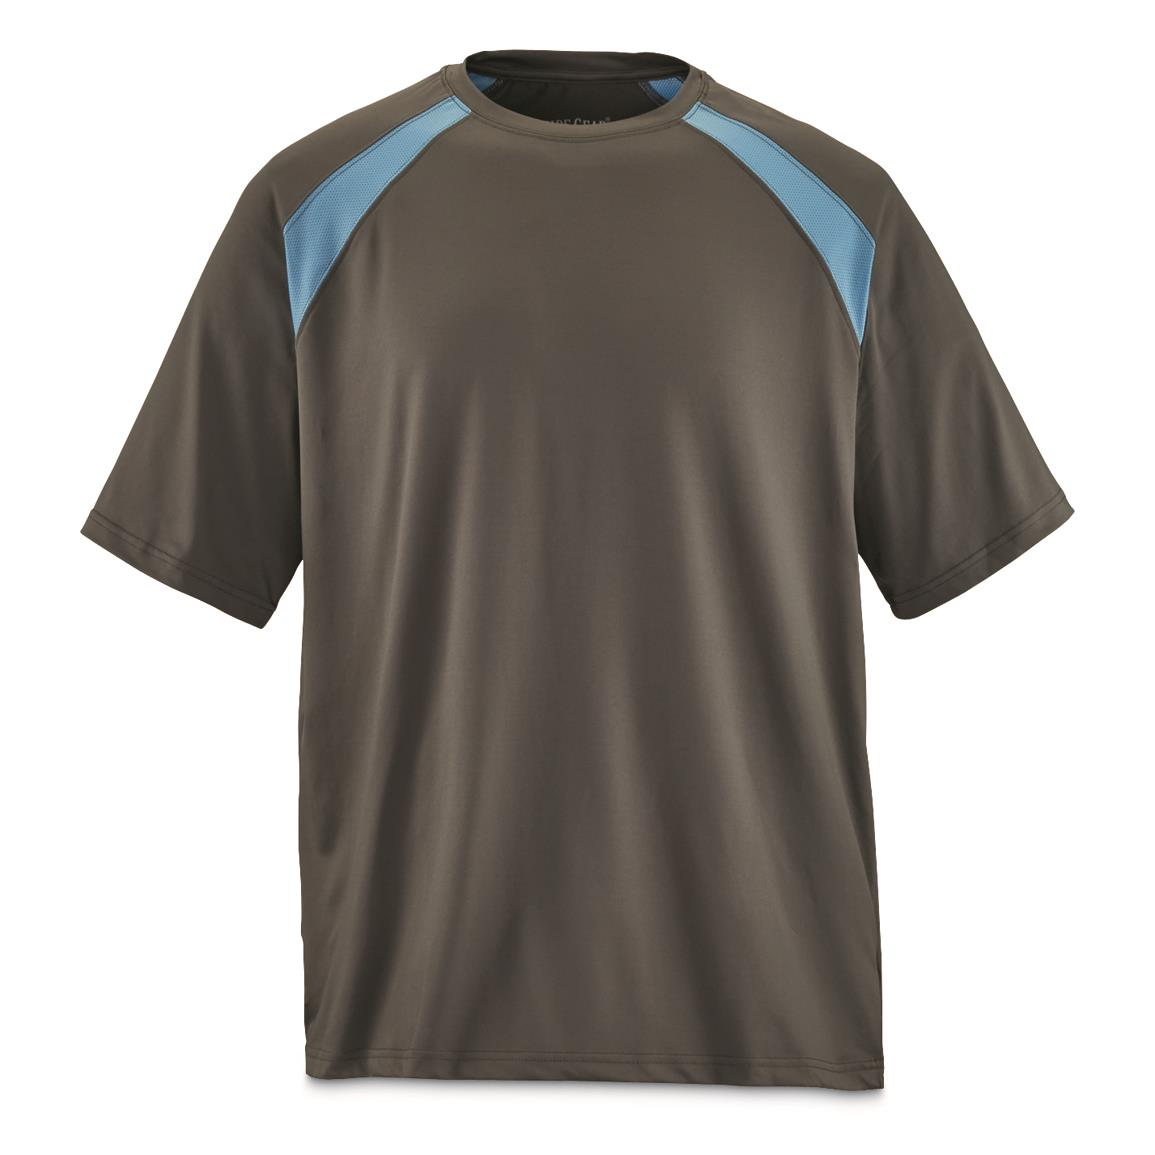 Guide Gear Men's Performance Fishing Short Sleeve T-Shirt, Charcoal